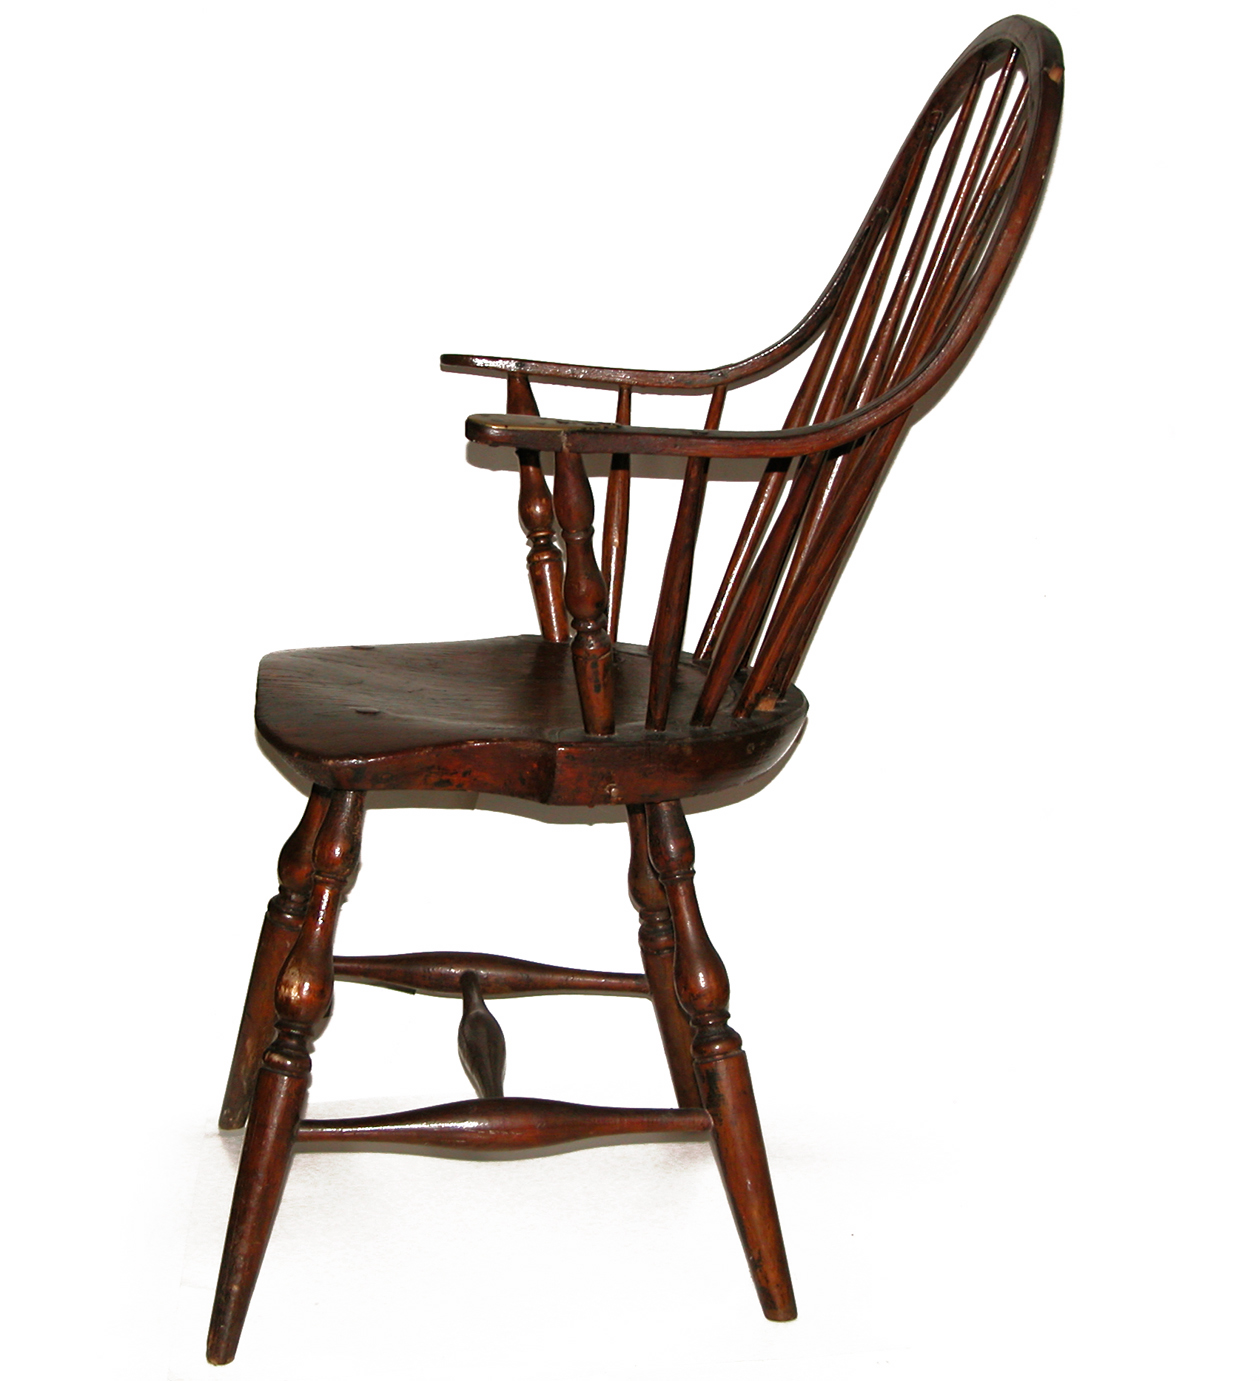 antique windsor chairs for sale chair stool philippines contemporary makers with repairs